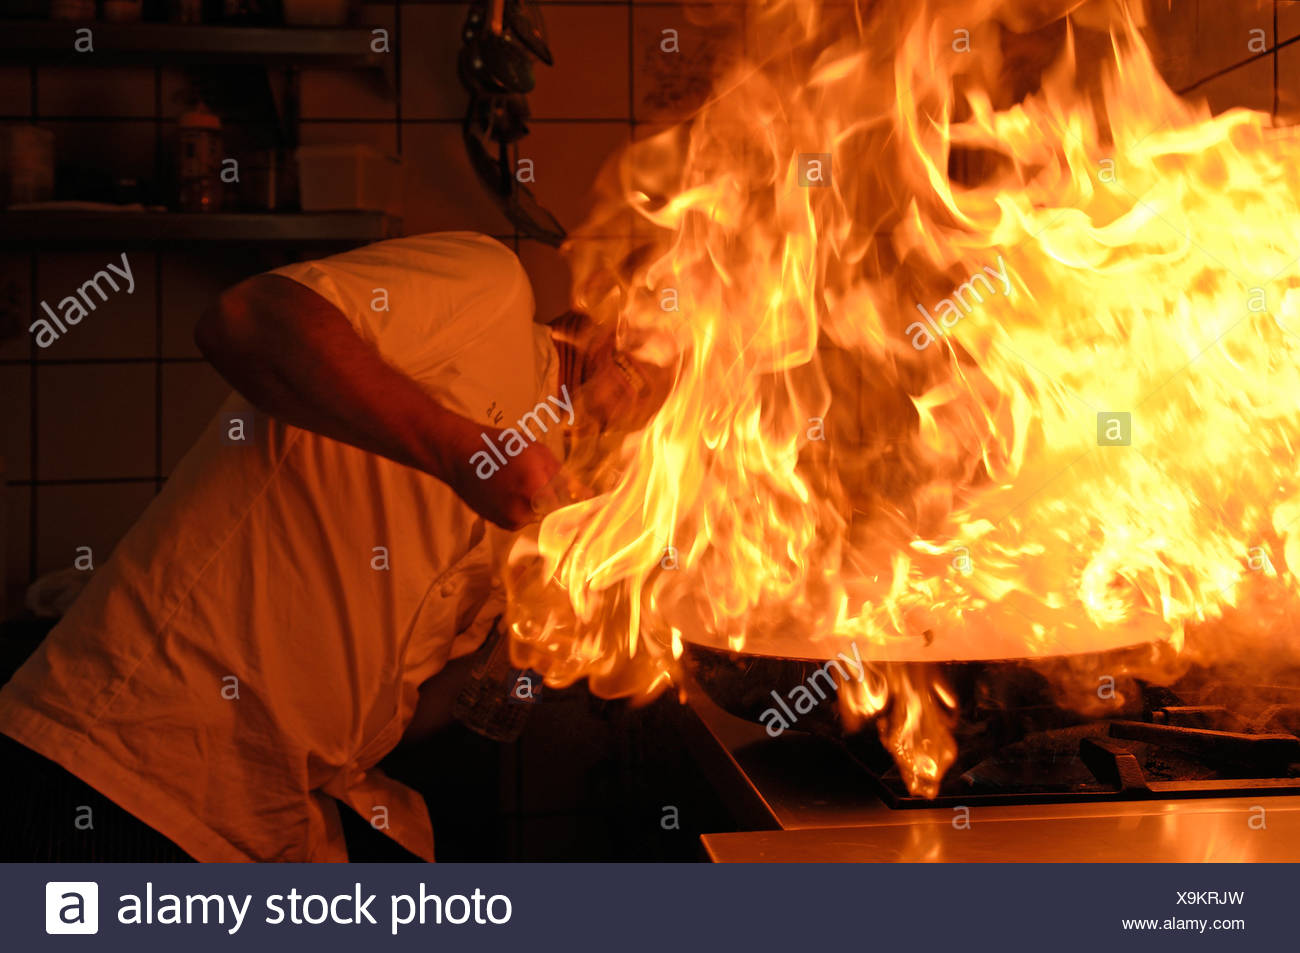 Cook holding a burning pan on the stove - Stock Image